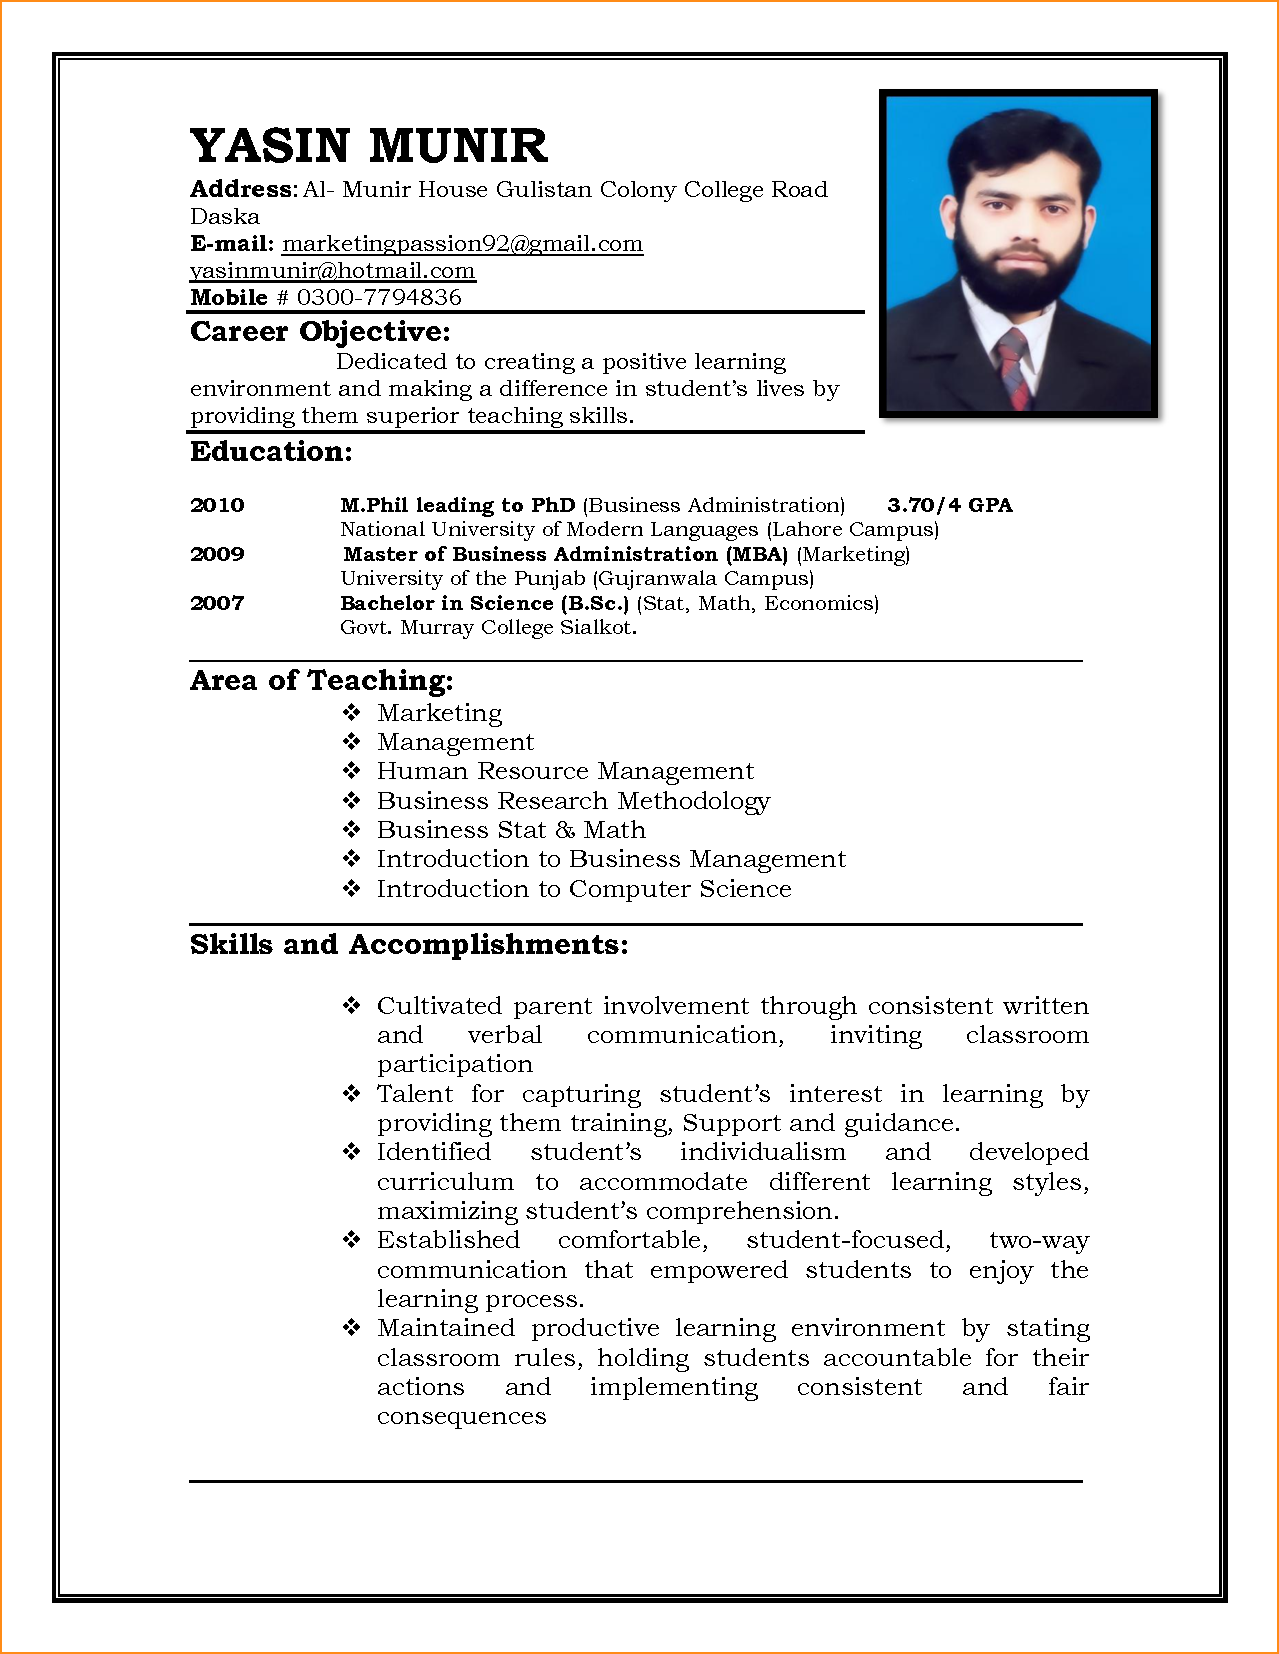 Resume Format For Jobs Cv Format For Job Application